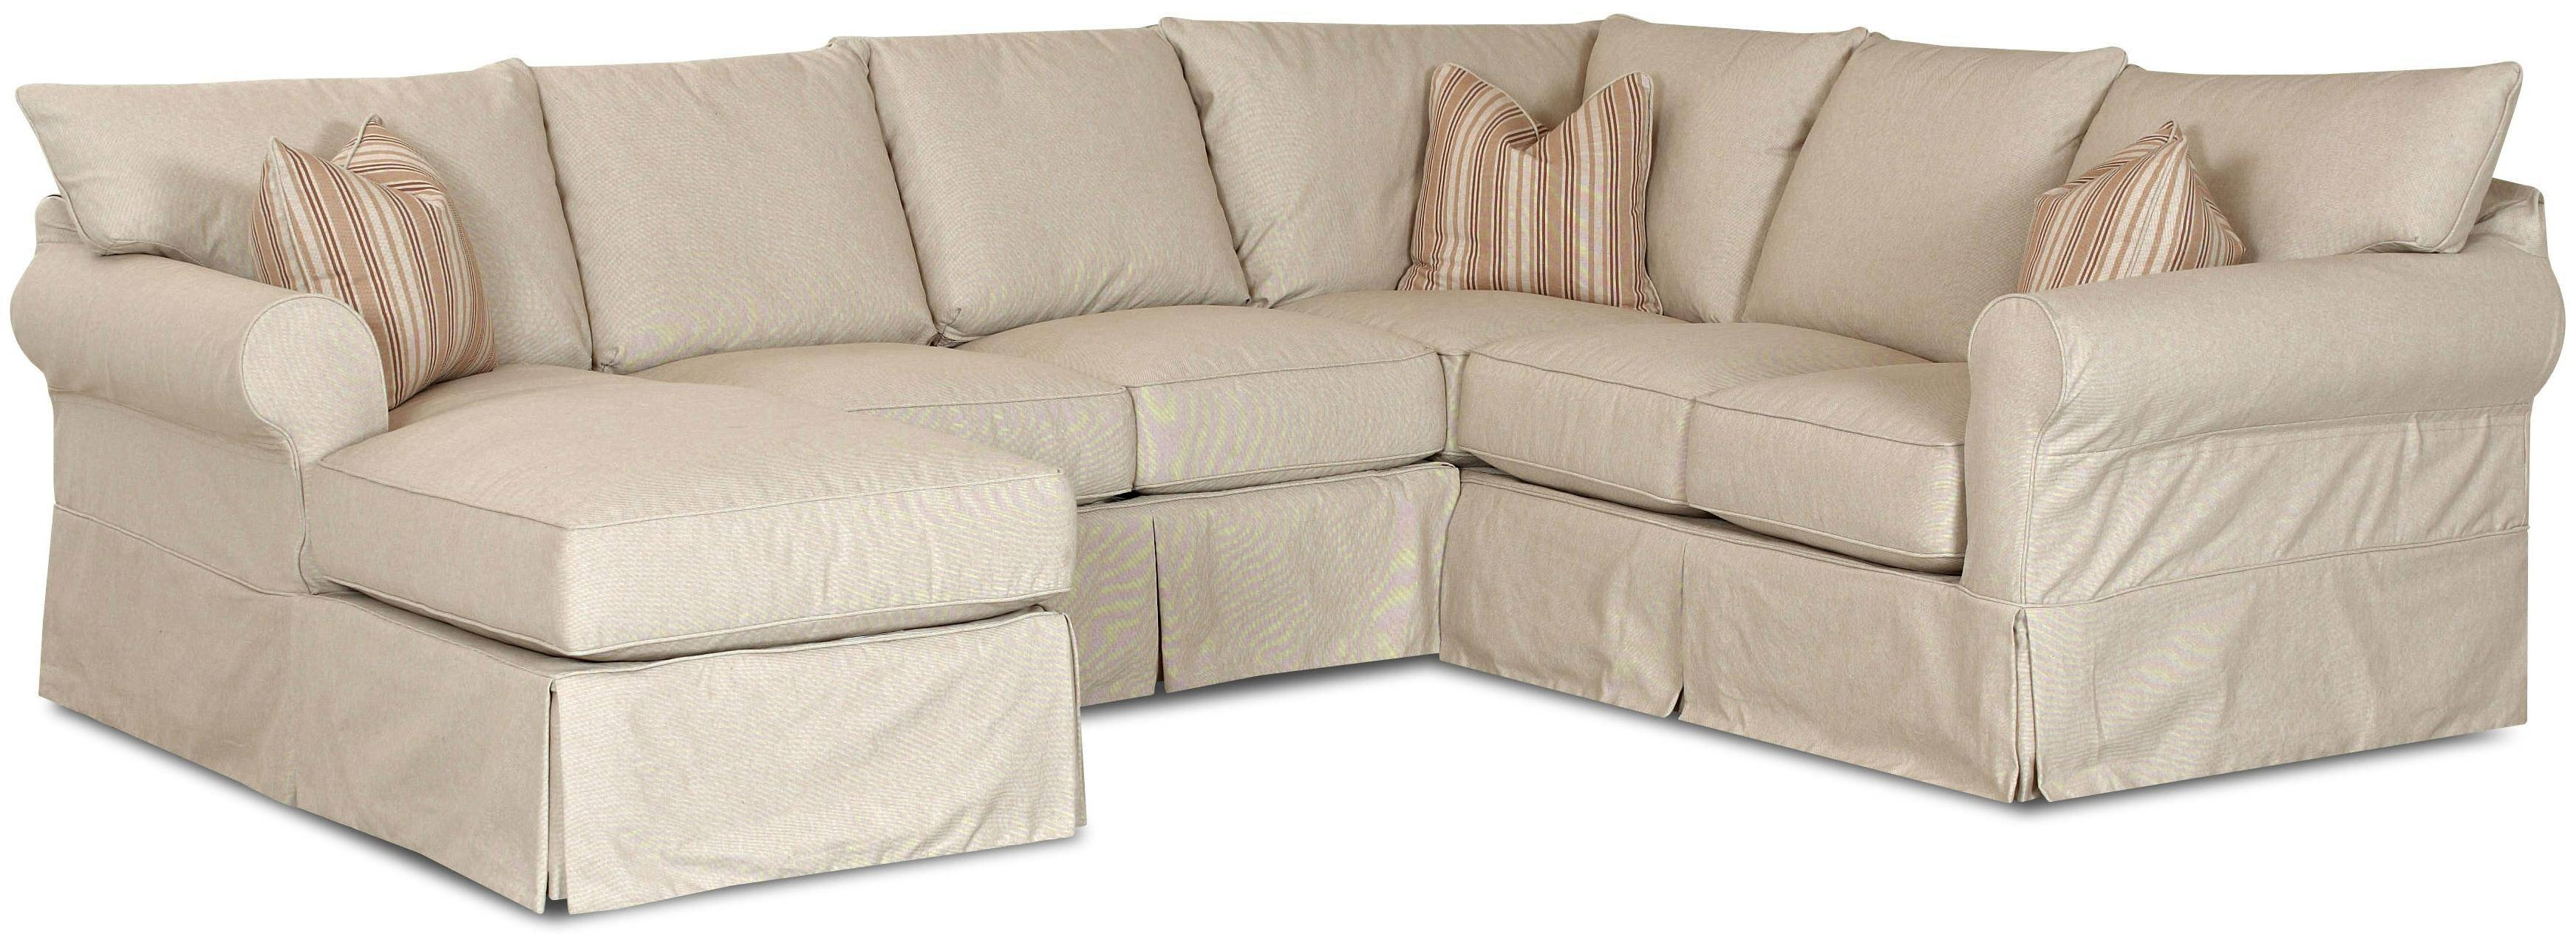 Slip Cover Sectional Sofa With Left Chaiseklaussner | Wolf And Pertaining To Sofas Cover For Sectional Sofas (View 11 of 15)